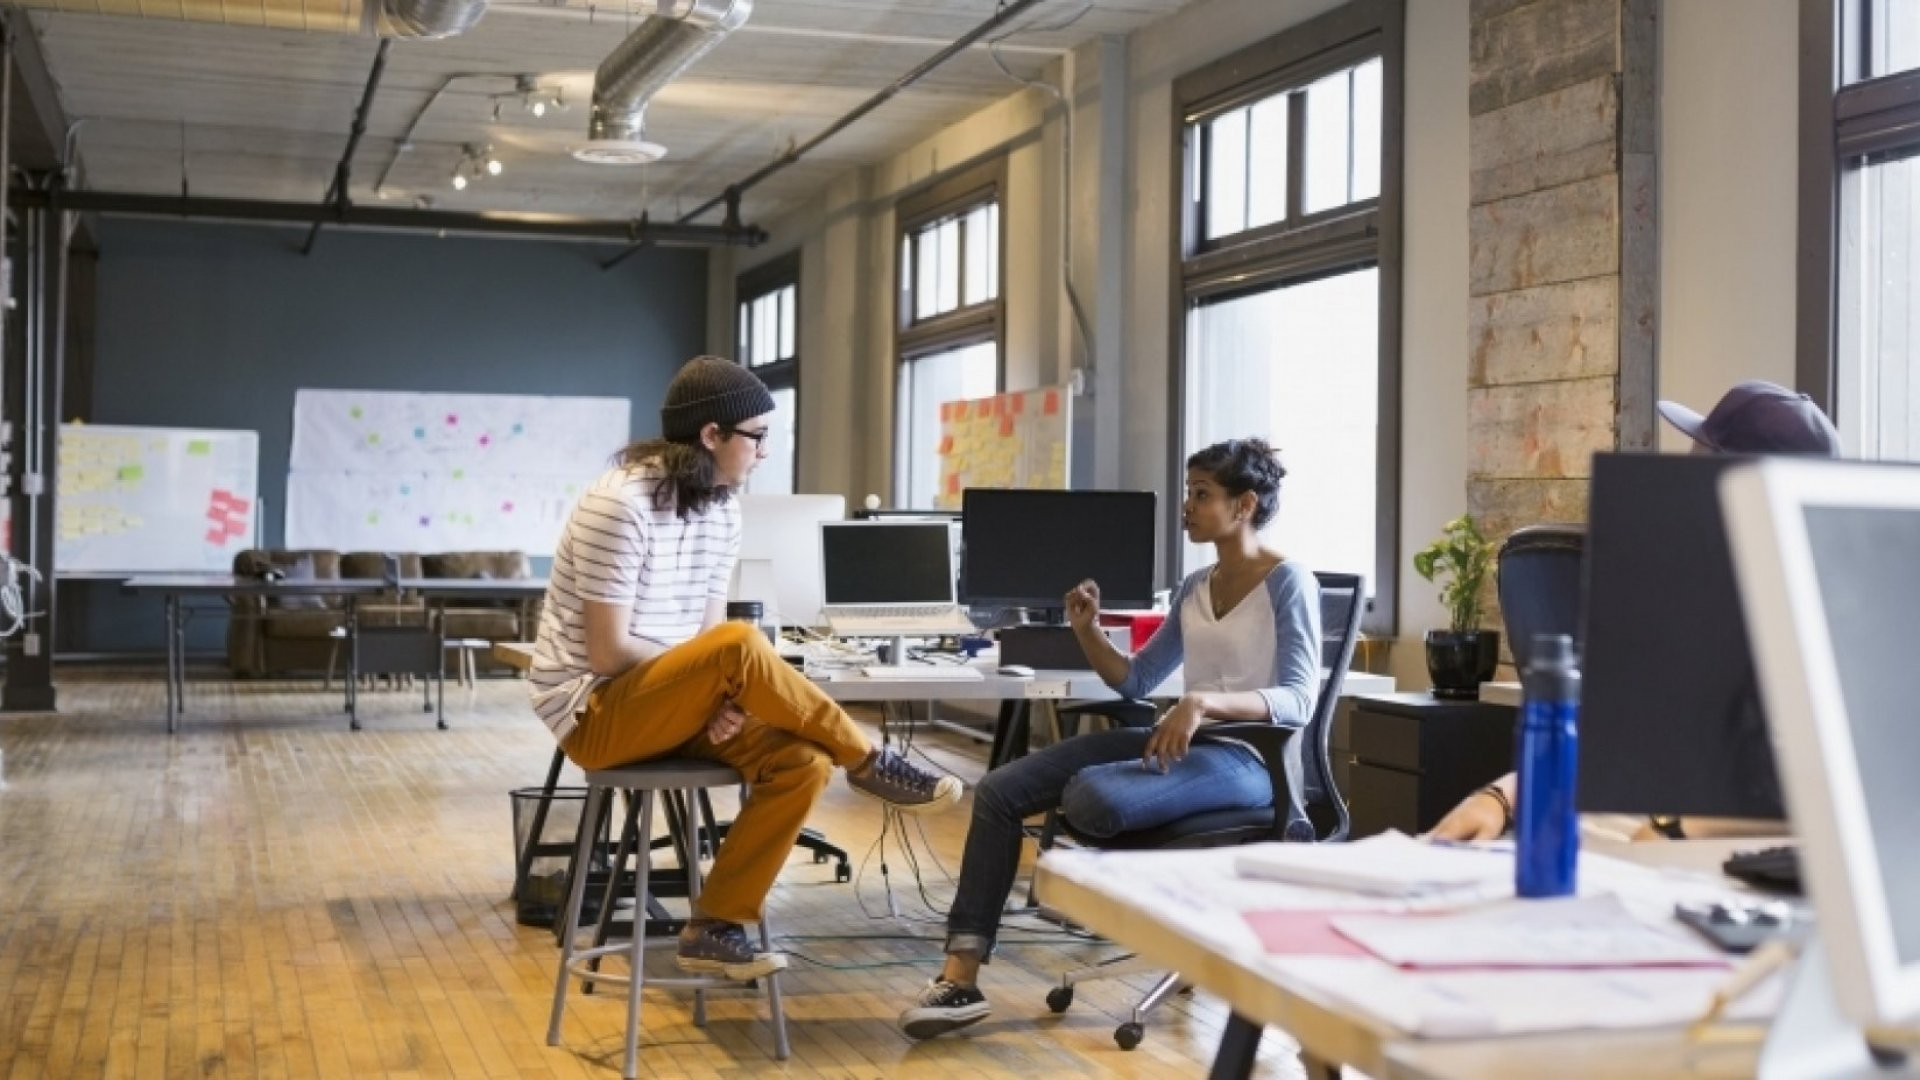 3 Reasons to Bring Startup Mentality to Digital Product Development